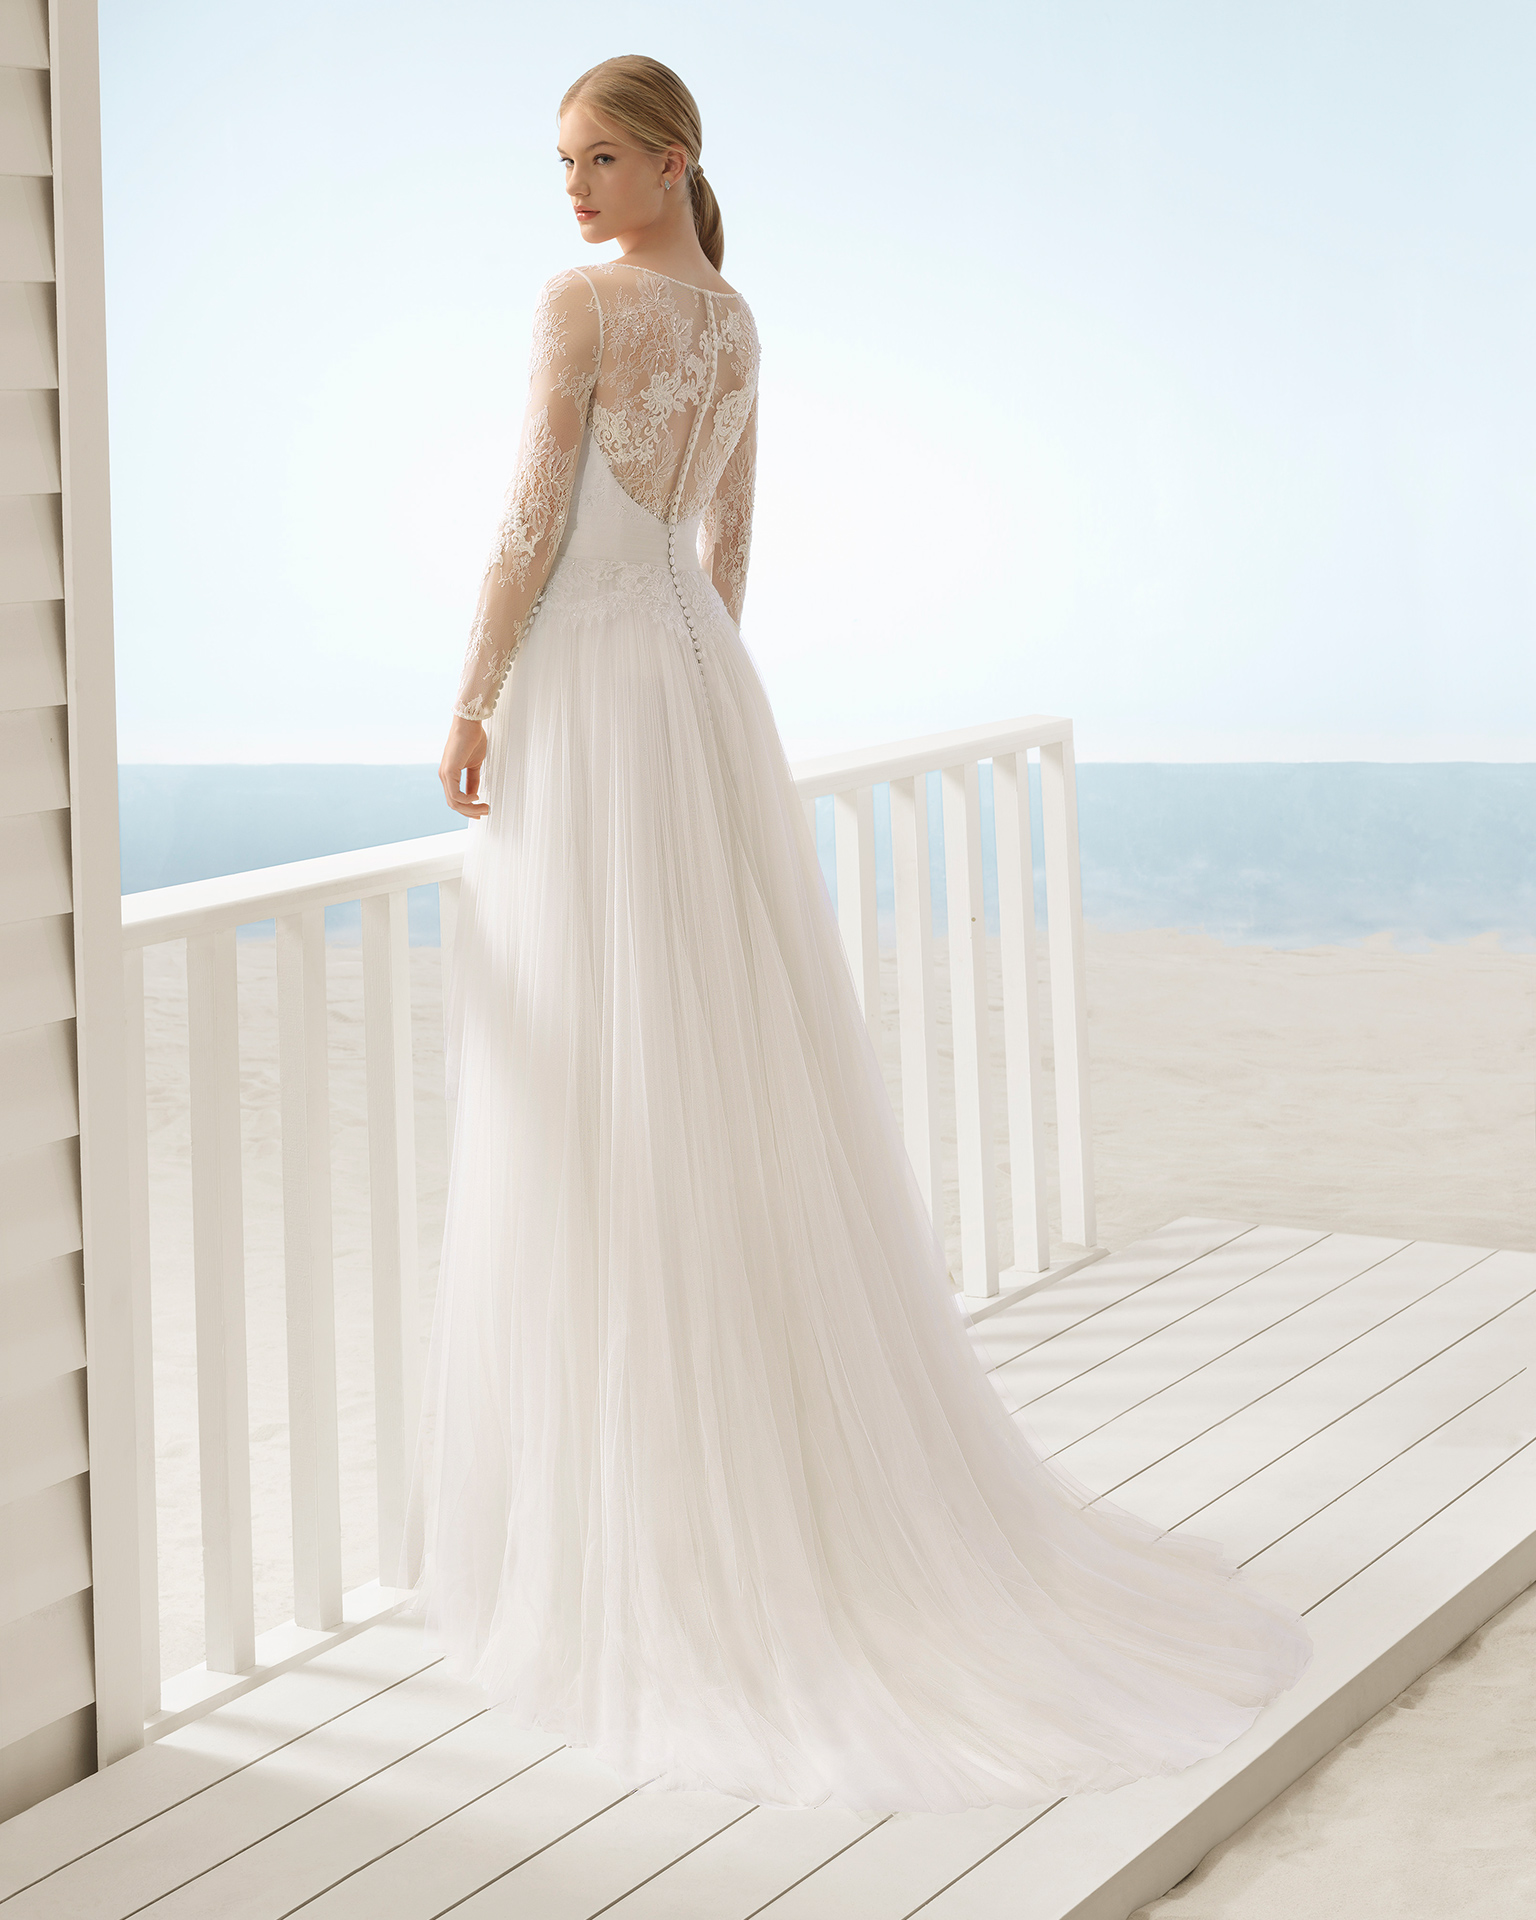 A-line beaded lace and tulle wedding dress with long sleeves, low back with sheer inserts and full skirt.